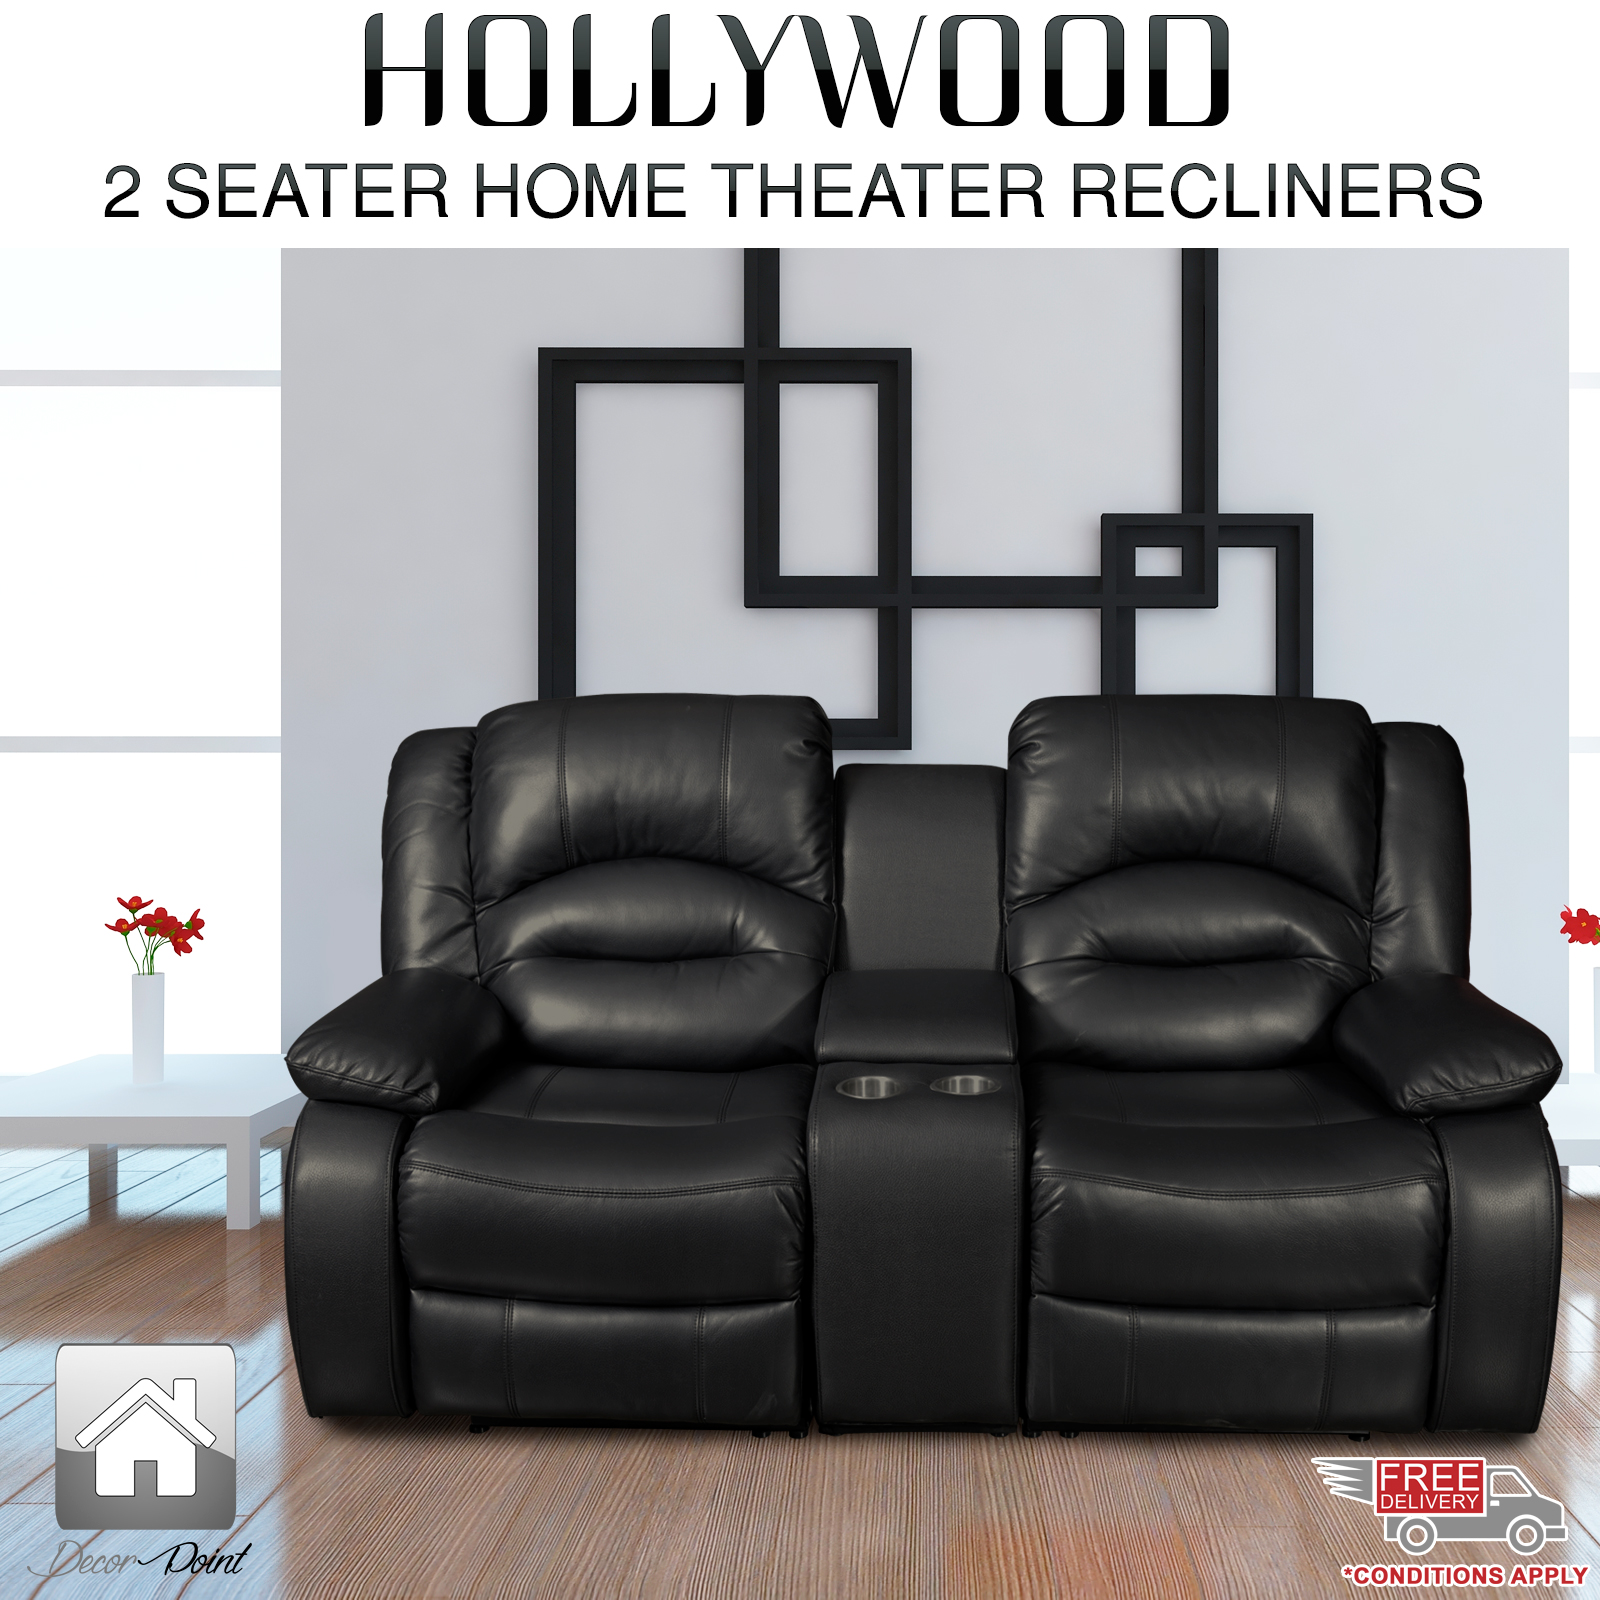 theater of unbelievable theatre files recliners leather concept and lounge pict furniture sofa recliner ideas home costco